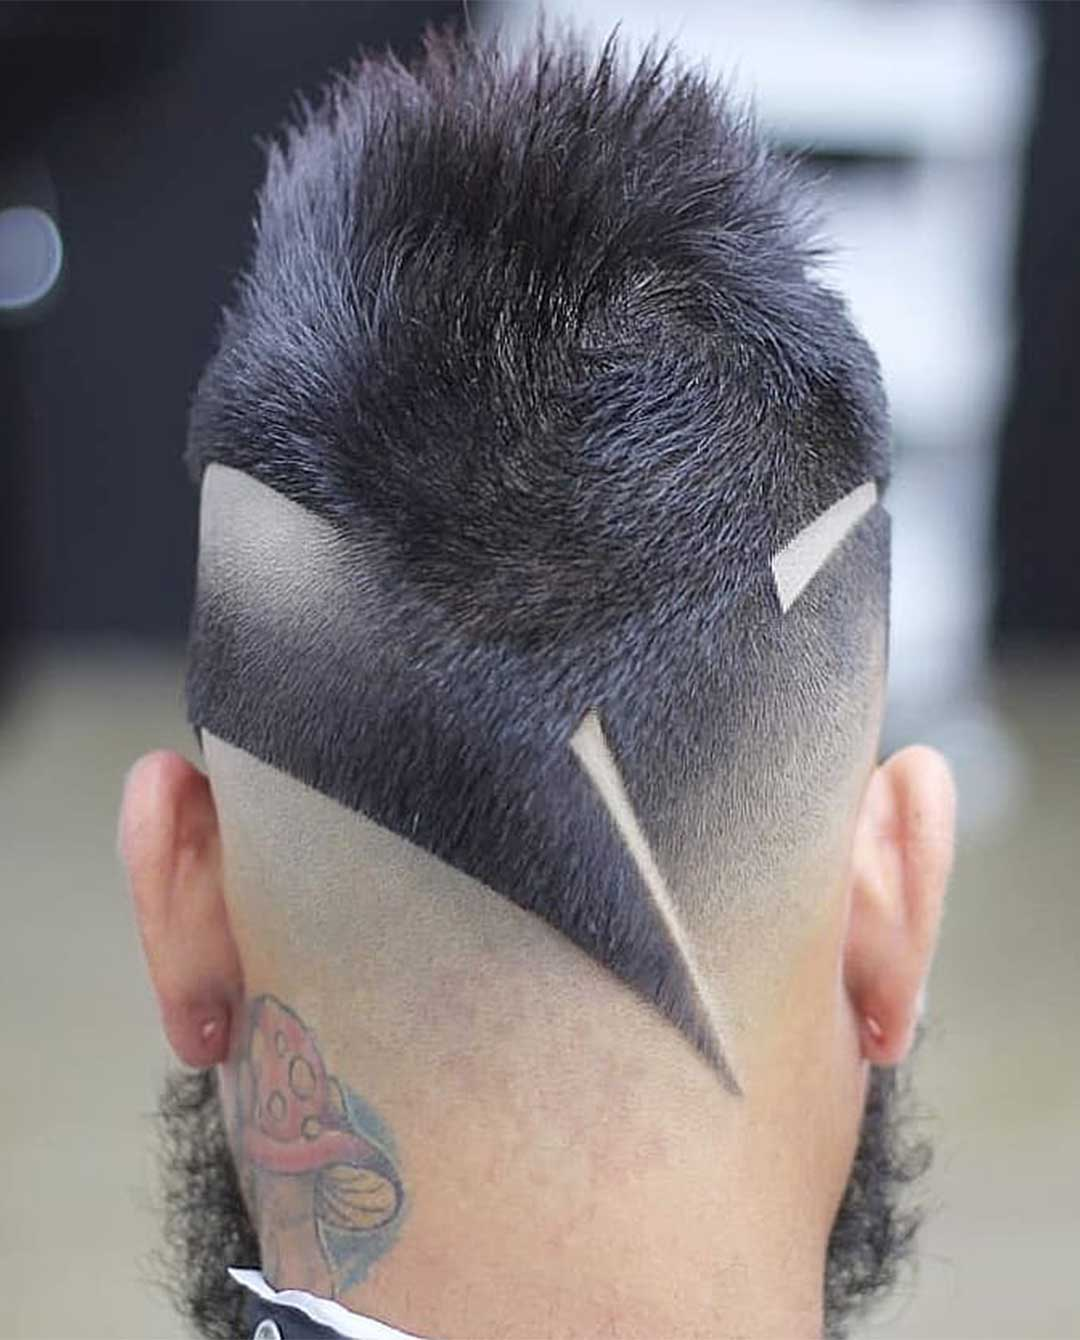 Modern Hair Design with Fades